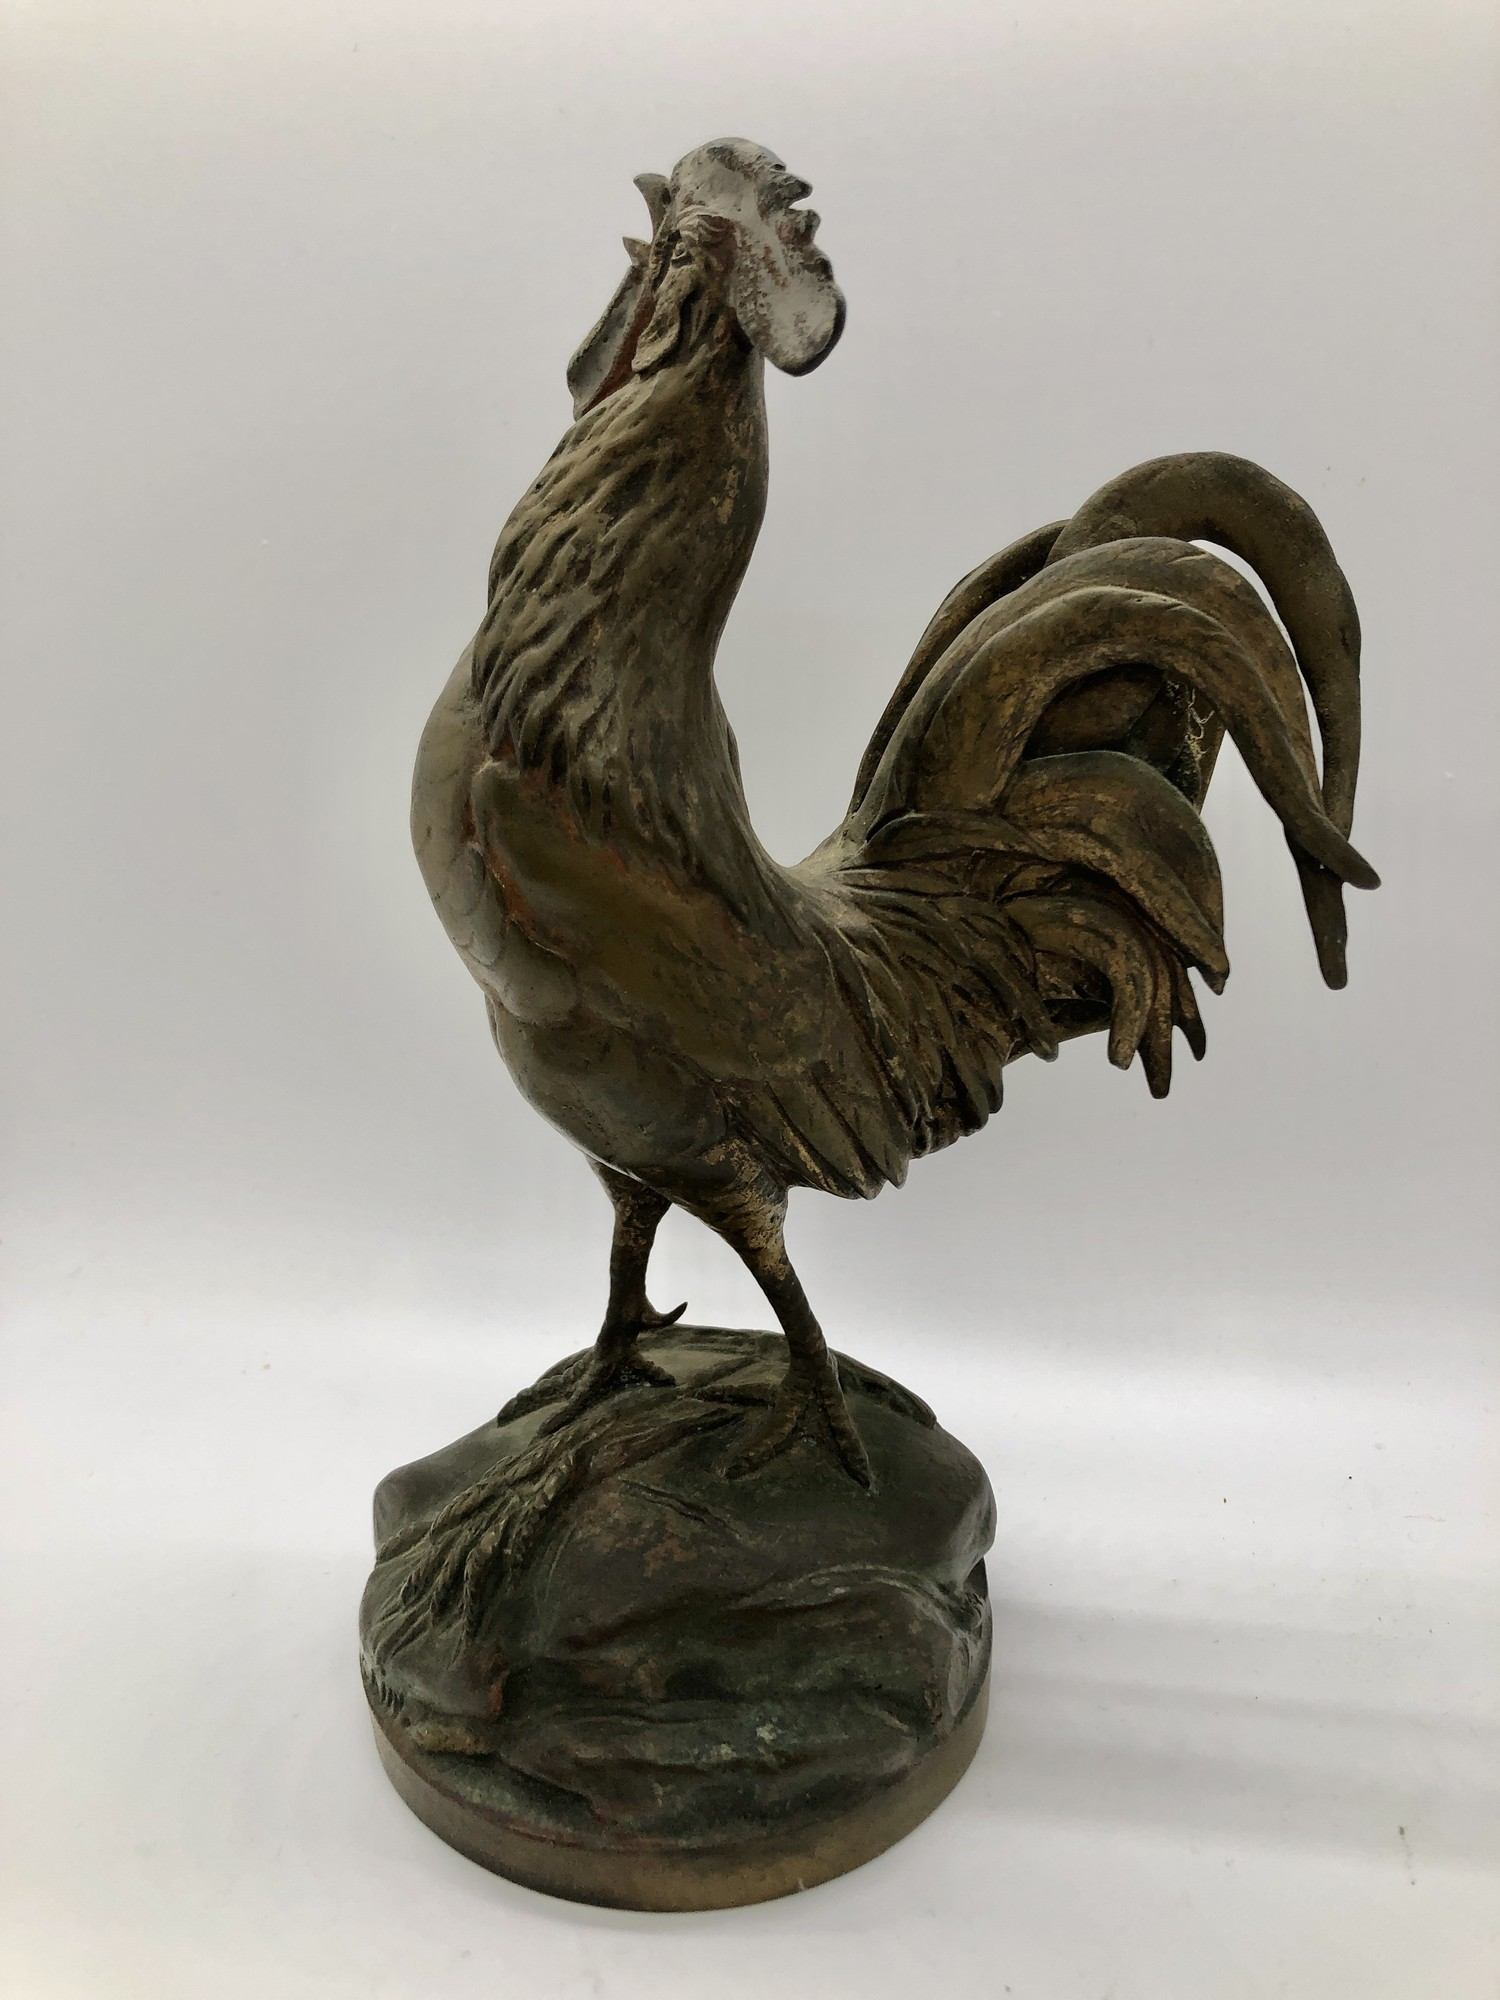 """Wonderful Bronze by Auguste Cain (1822-1894) titled \""""Le Reveil\"""" (The Awakening), Foundry marks. This one was given as a prize and is marked \""""The Gushee Trophy 1929 Tennis Men's Singles Champion of the U.S. Runner Up\"""""""